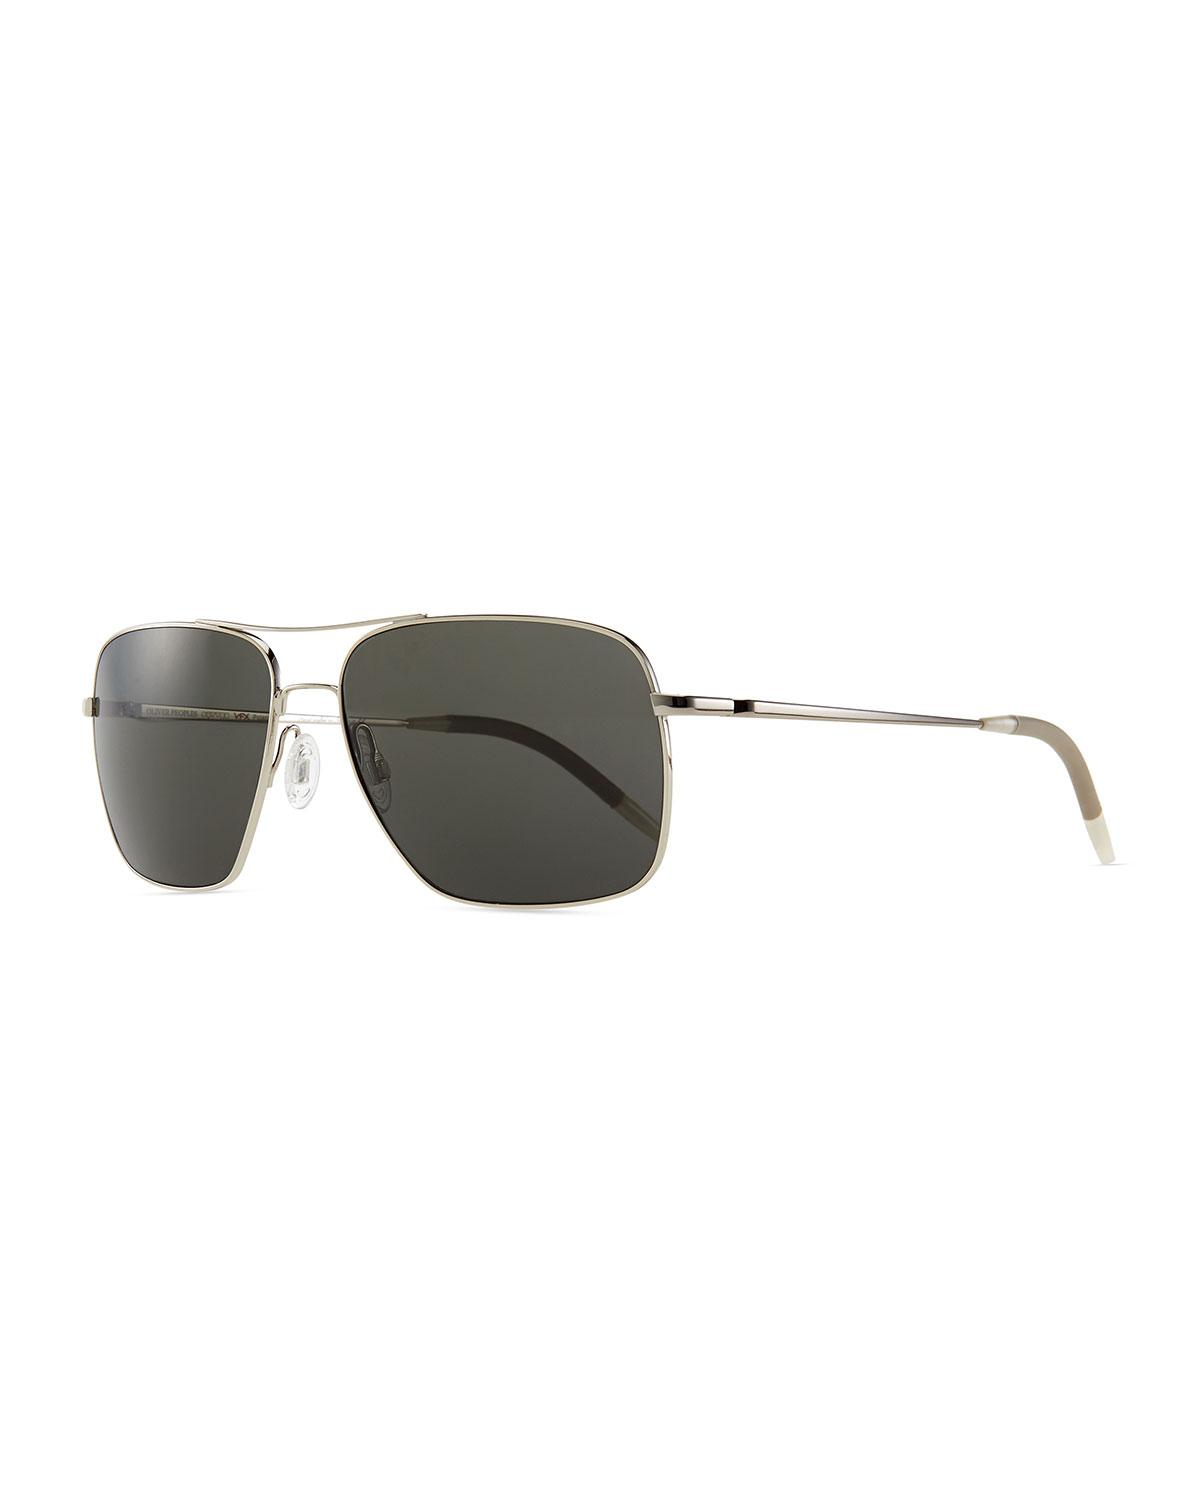 85b4f782df3 Lyst - Oliver Peoples Clifton Polarized Sunglasses in Metallic for ...